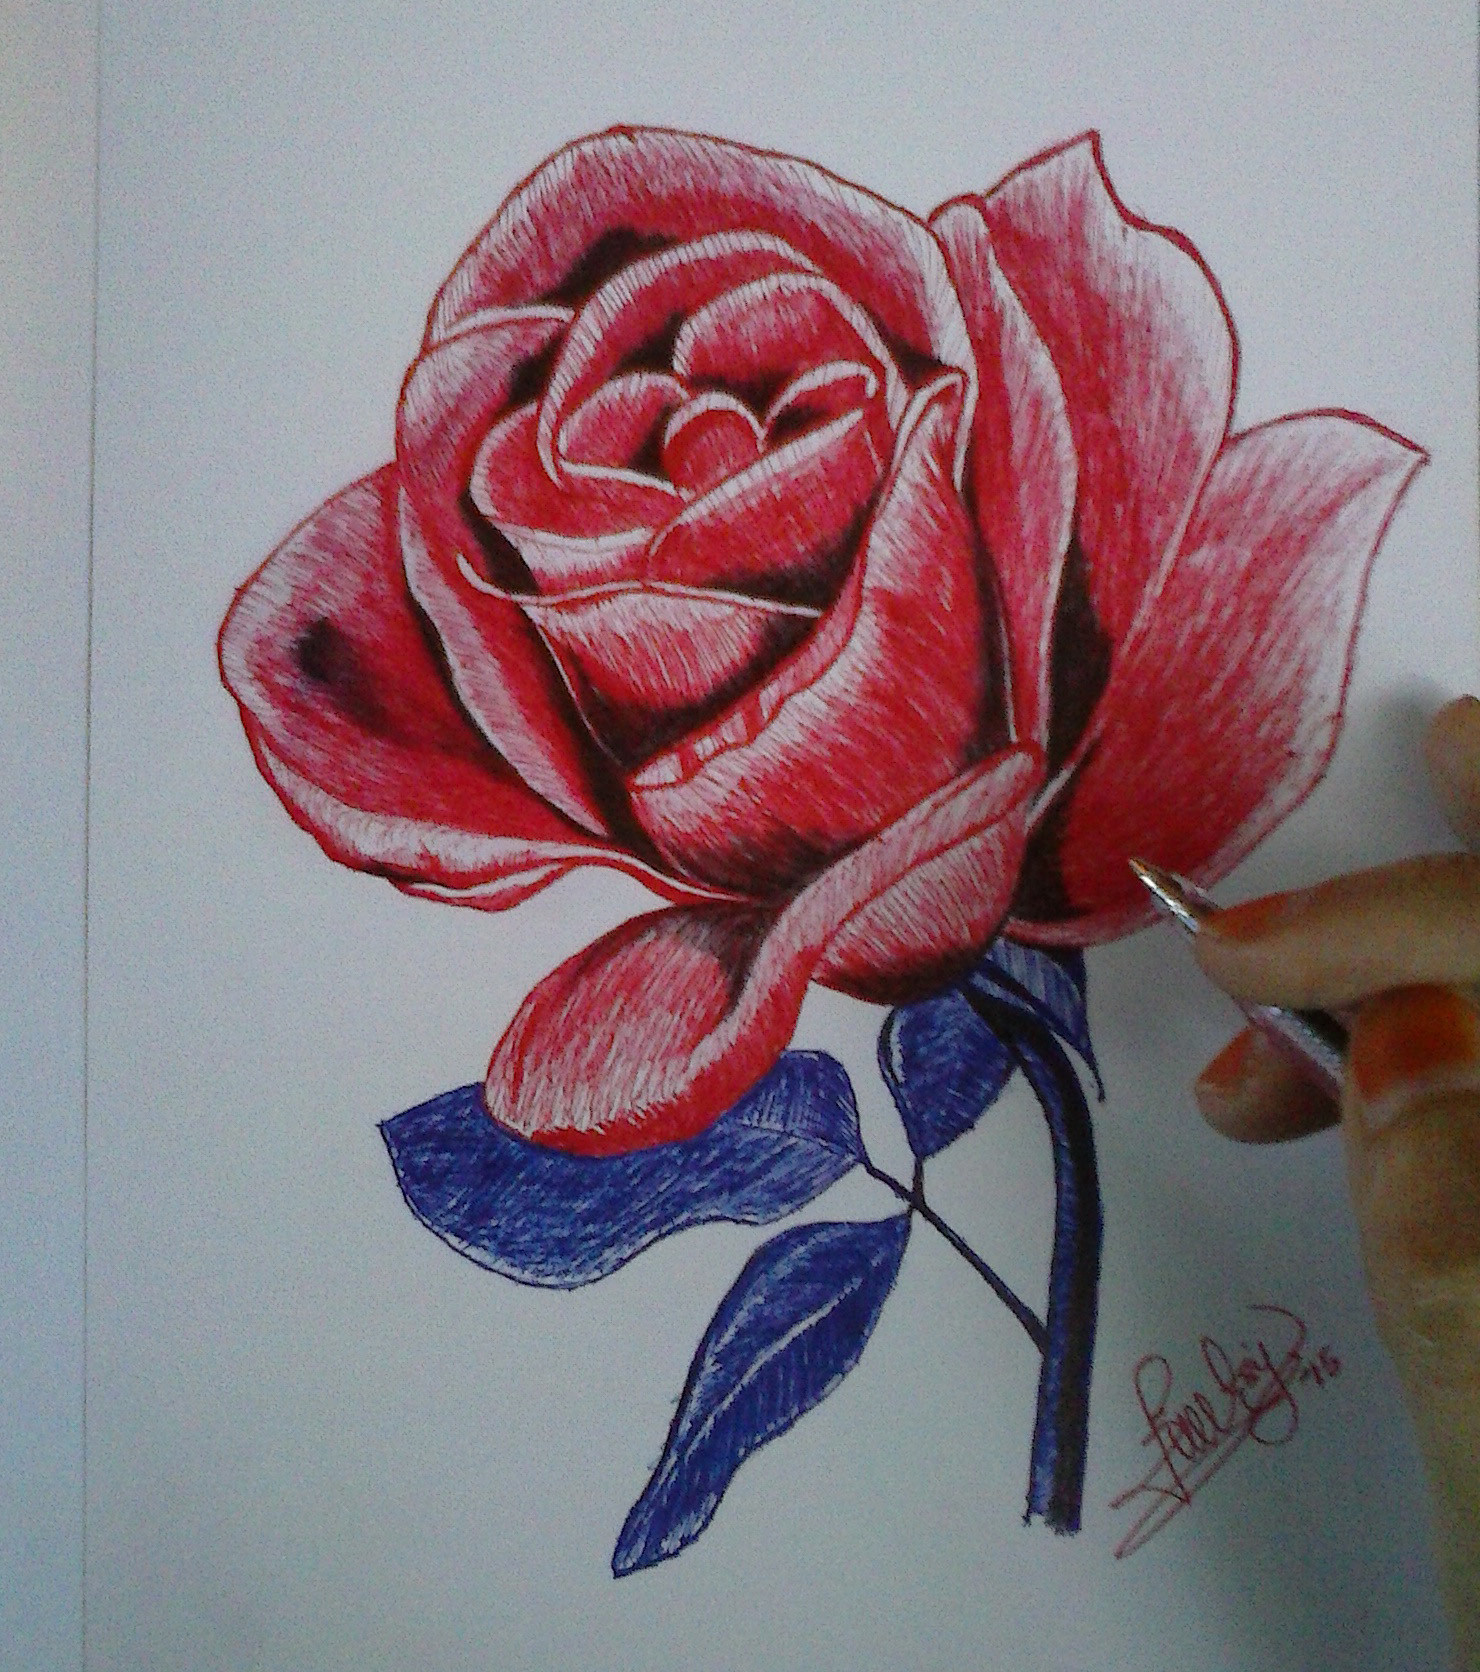 Drawn red rose pen drawing Rose Red Black Images And